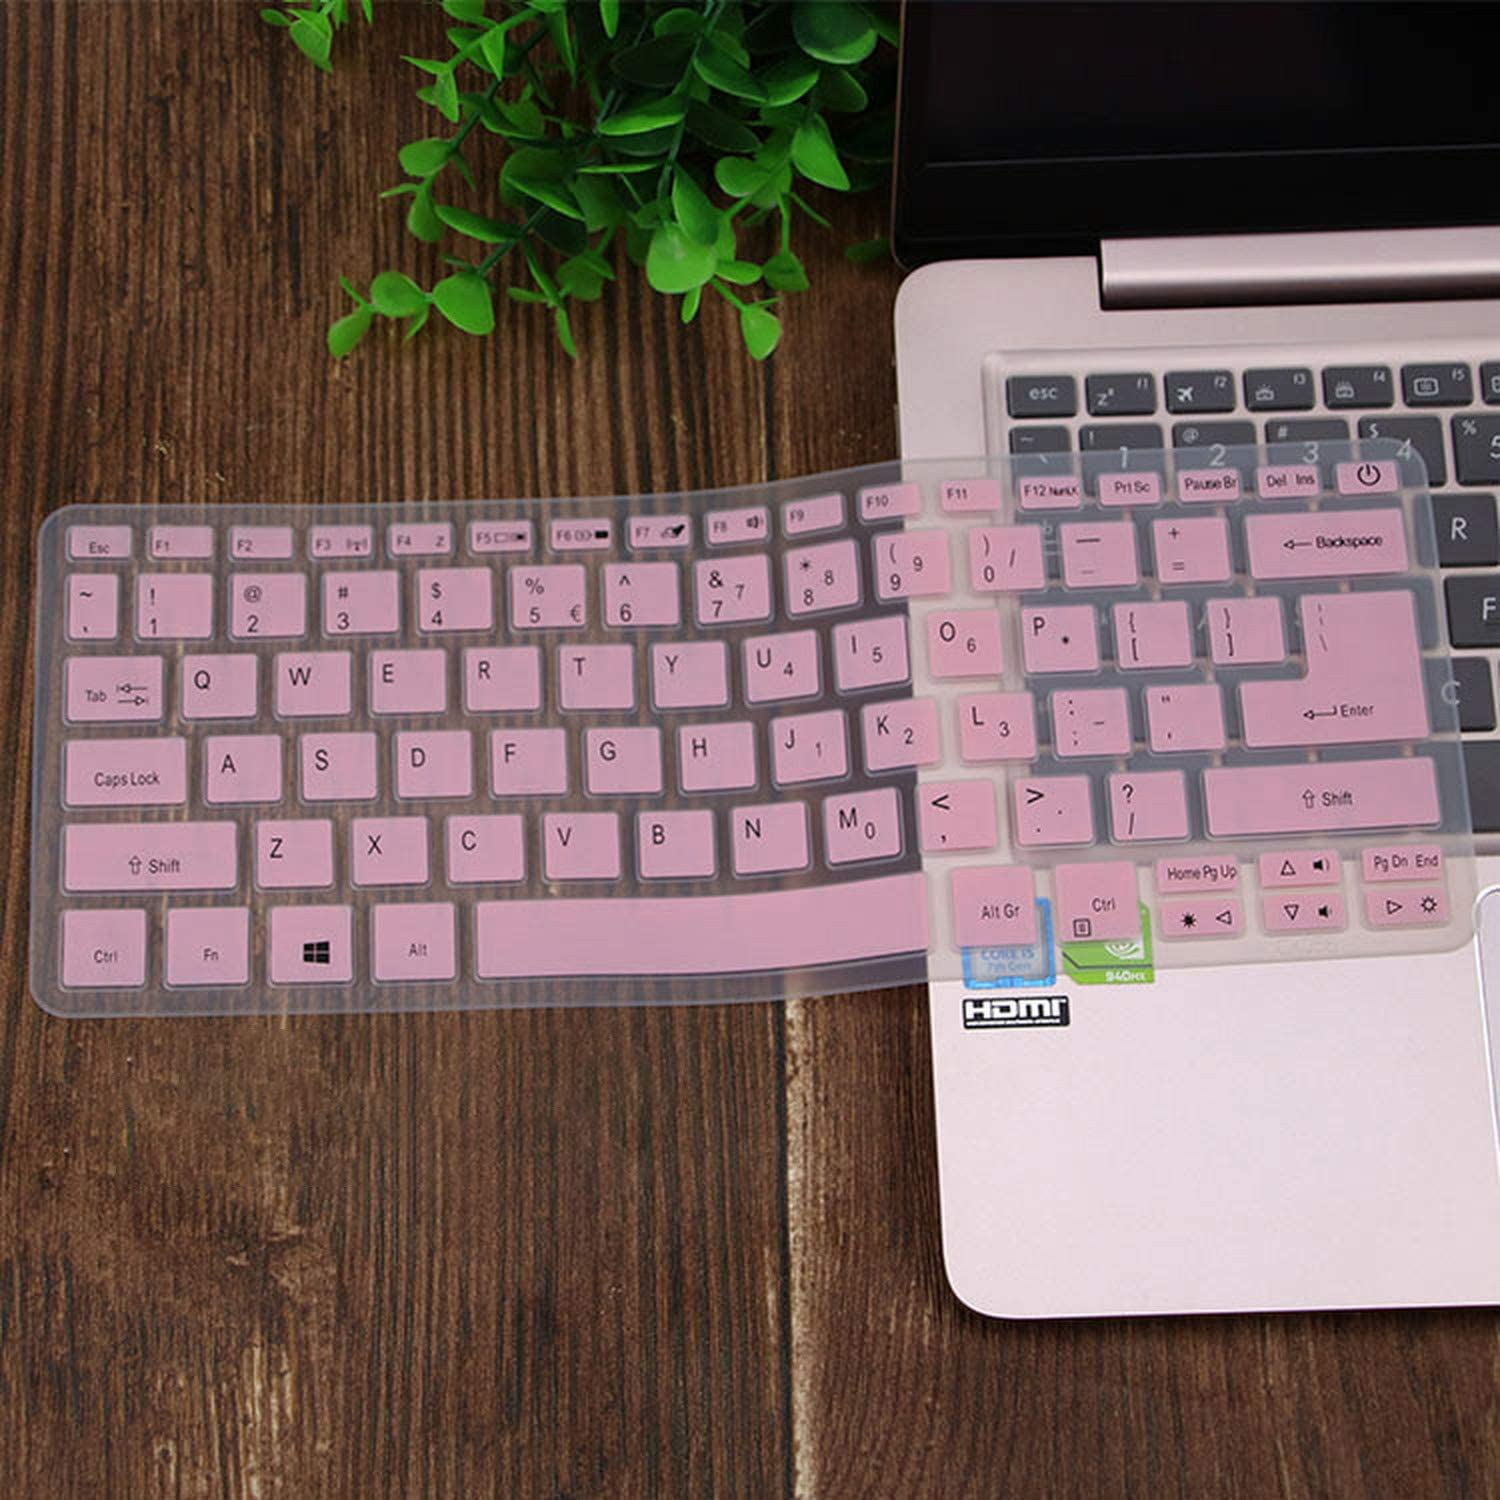 for Acer Swift Sf113 S5 371 Sf514 Sf5 Swift 5 Swift 3 Aspire S13 14 Sf314 Spin 5 13.3 Laptop Keyboard Cover Skin Protector-in Keyboard Covers from Computer /& Office,Pink